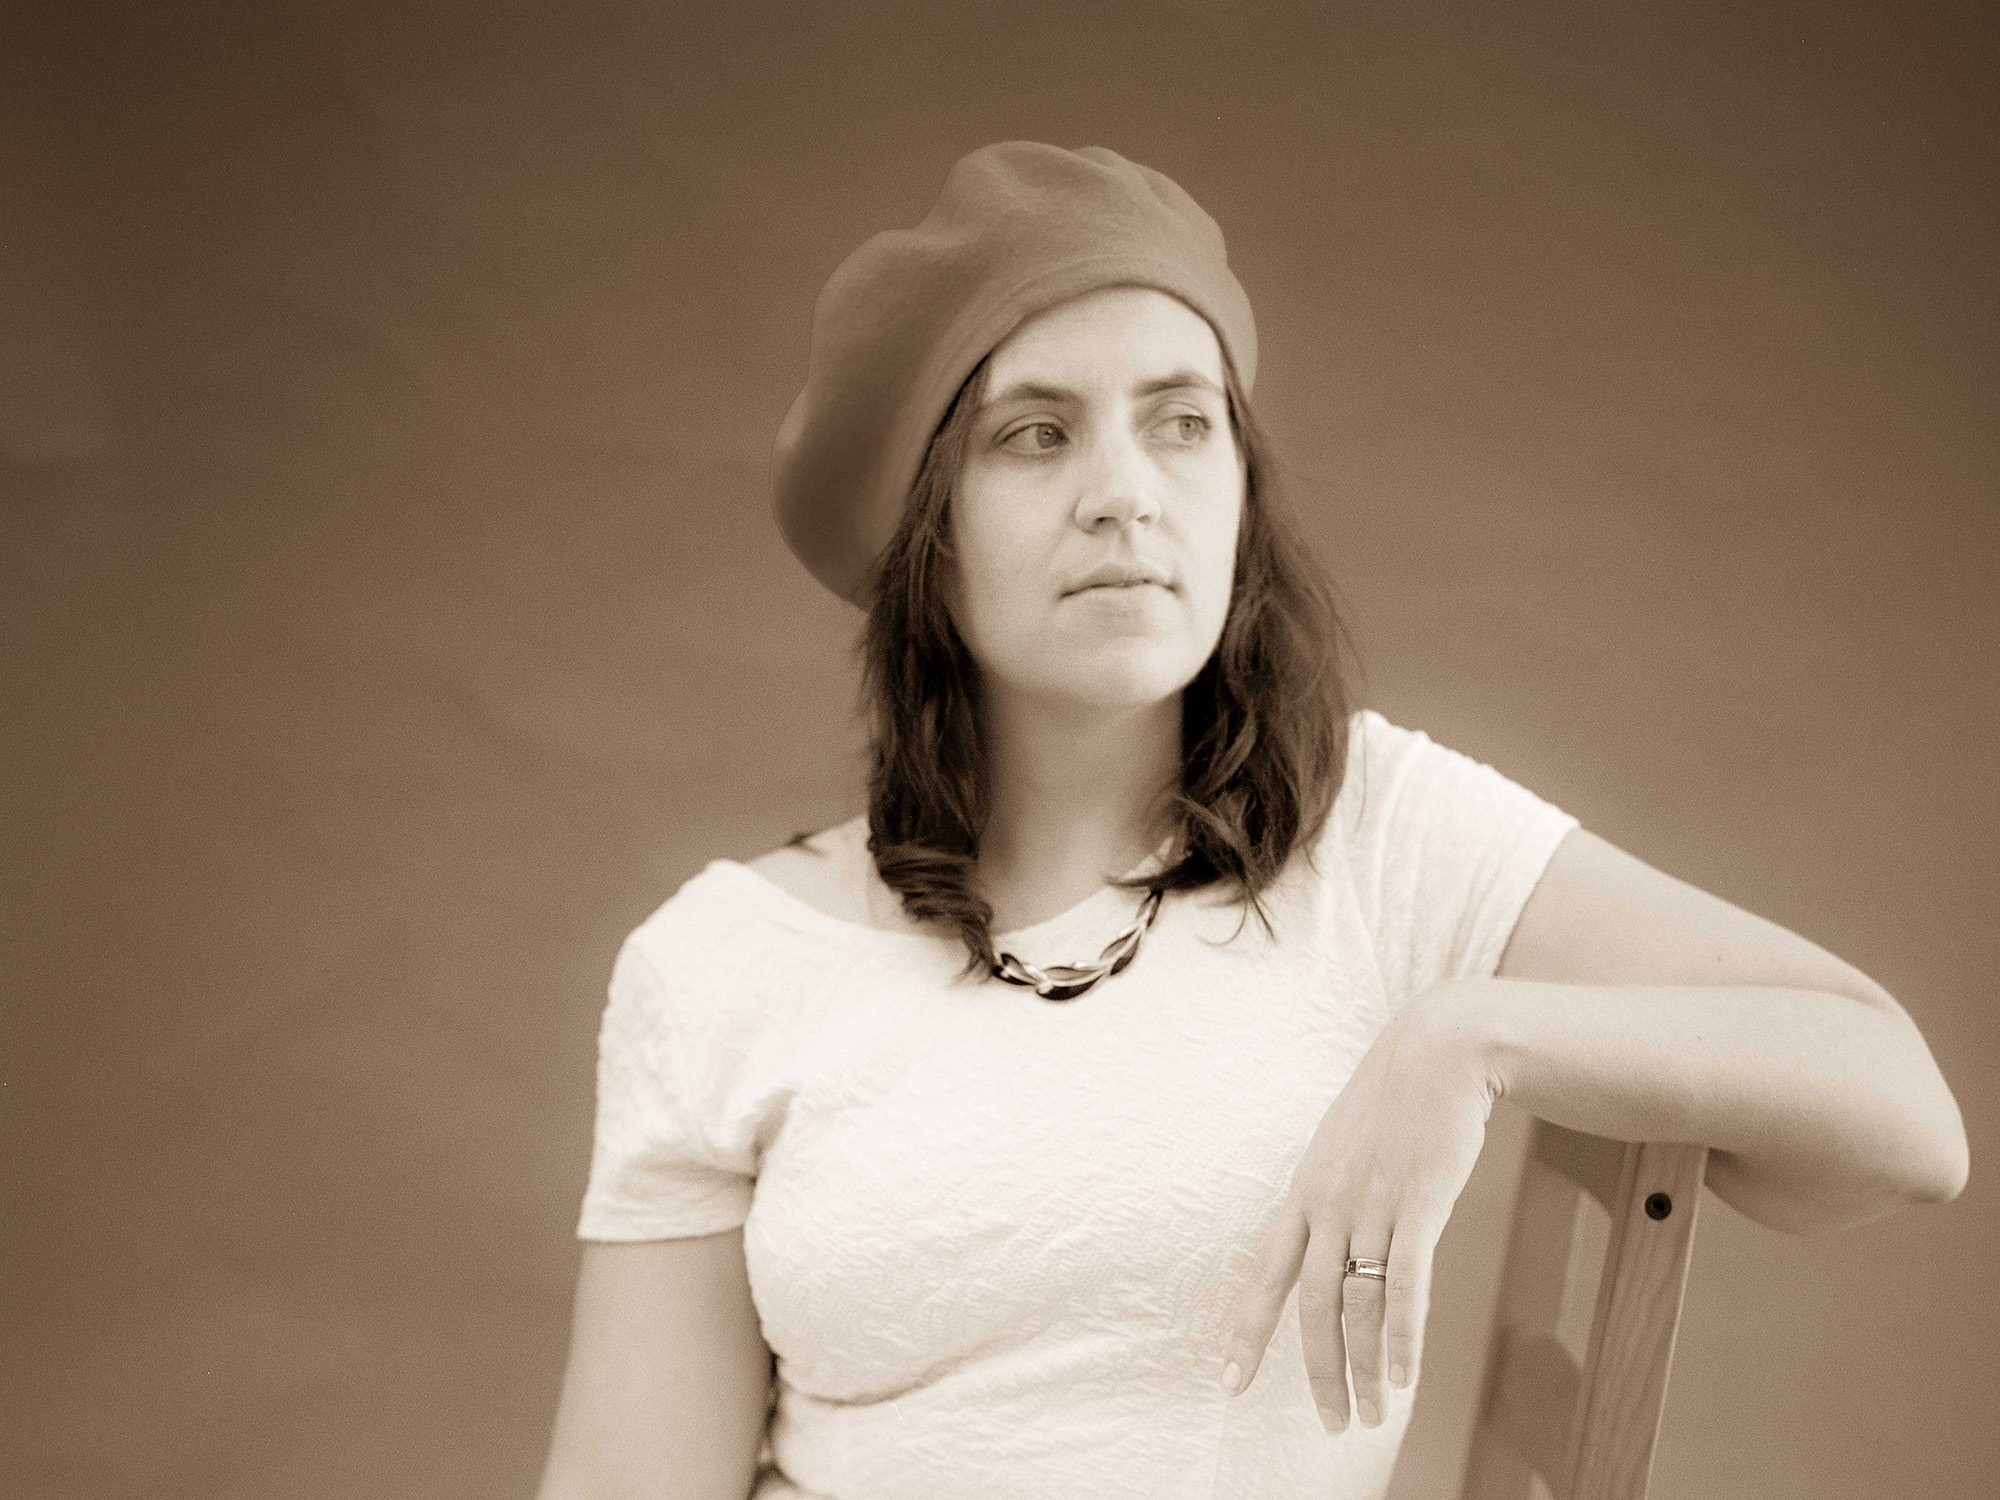 Portrait of Amy in Sepia Tone